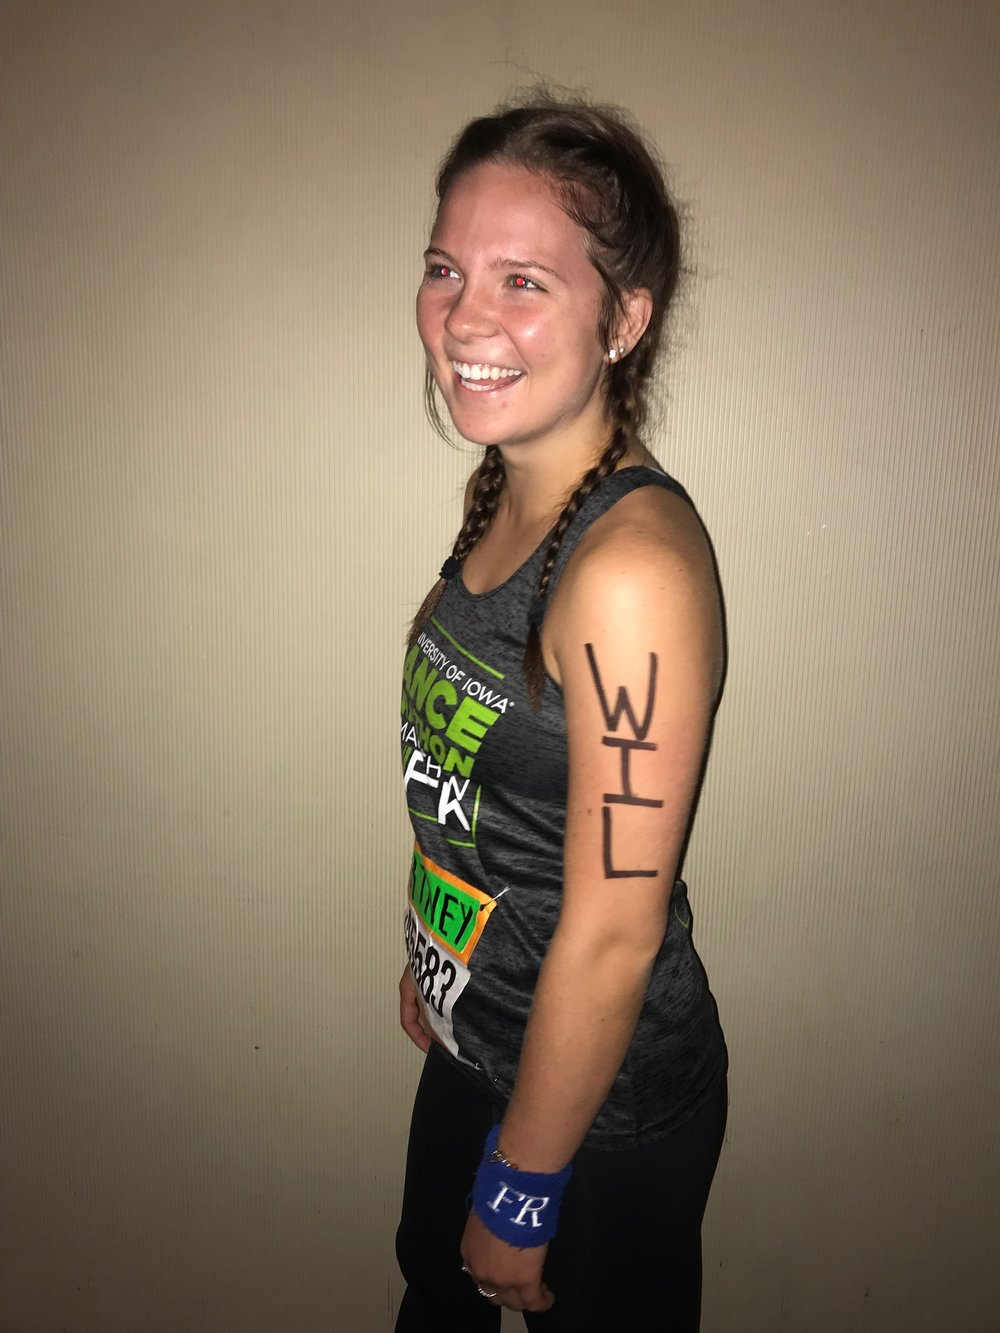 courtney-sadler-chicago-marathon-ftk.jpg